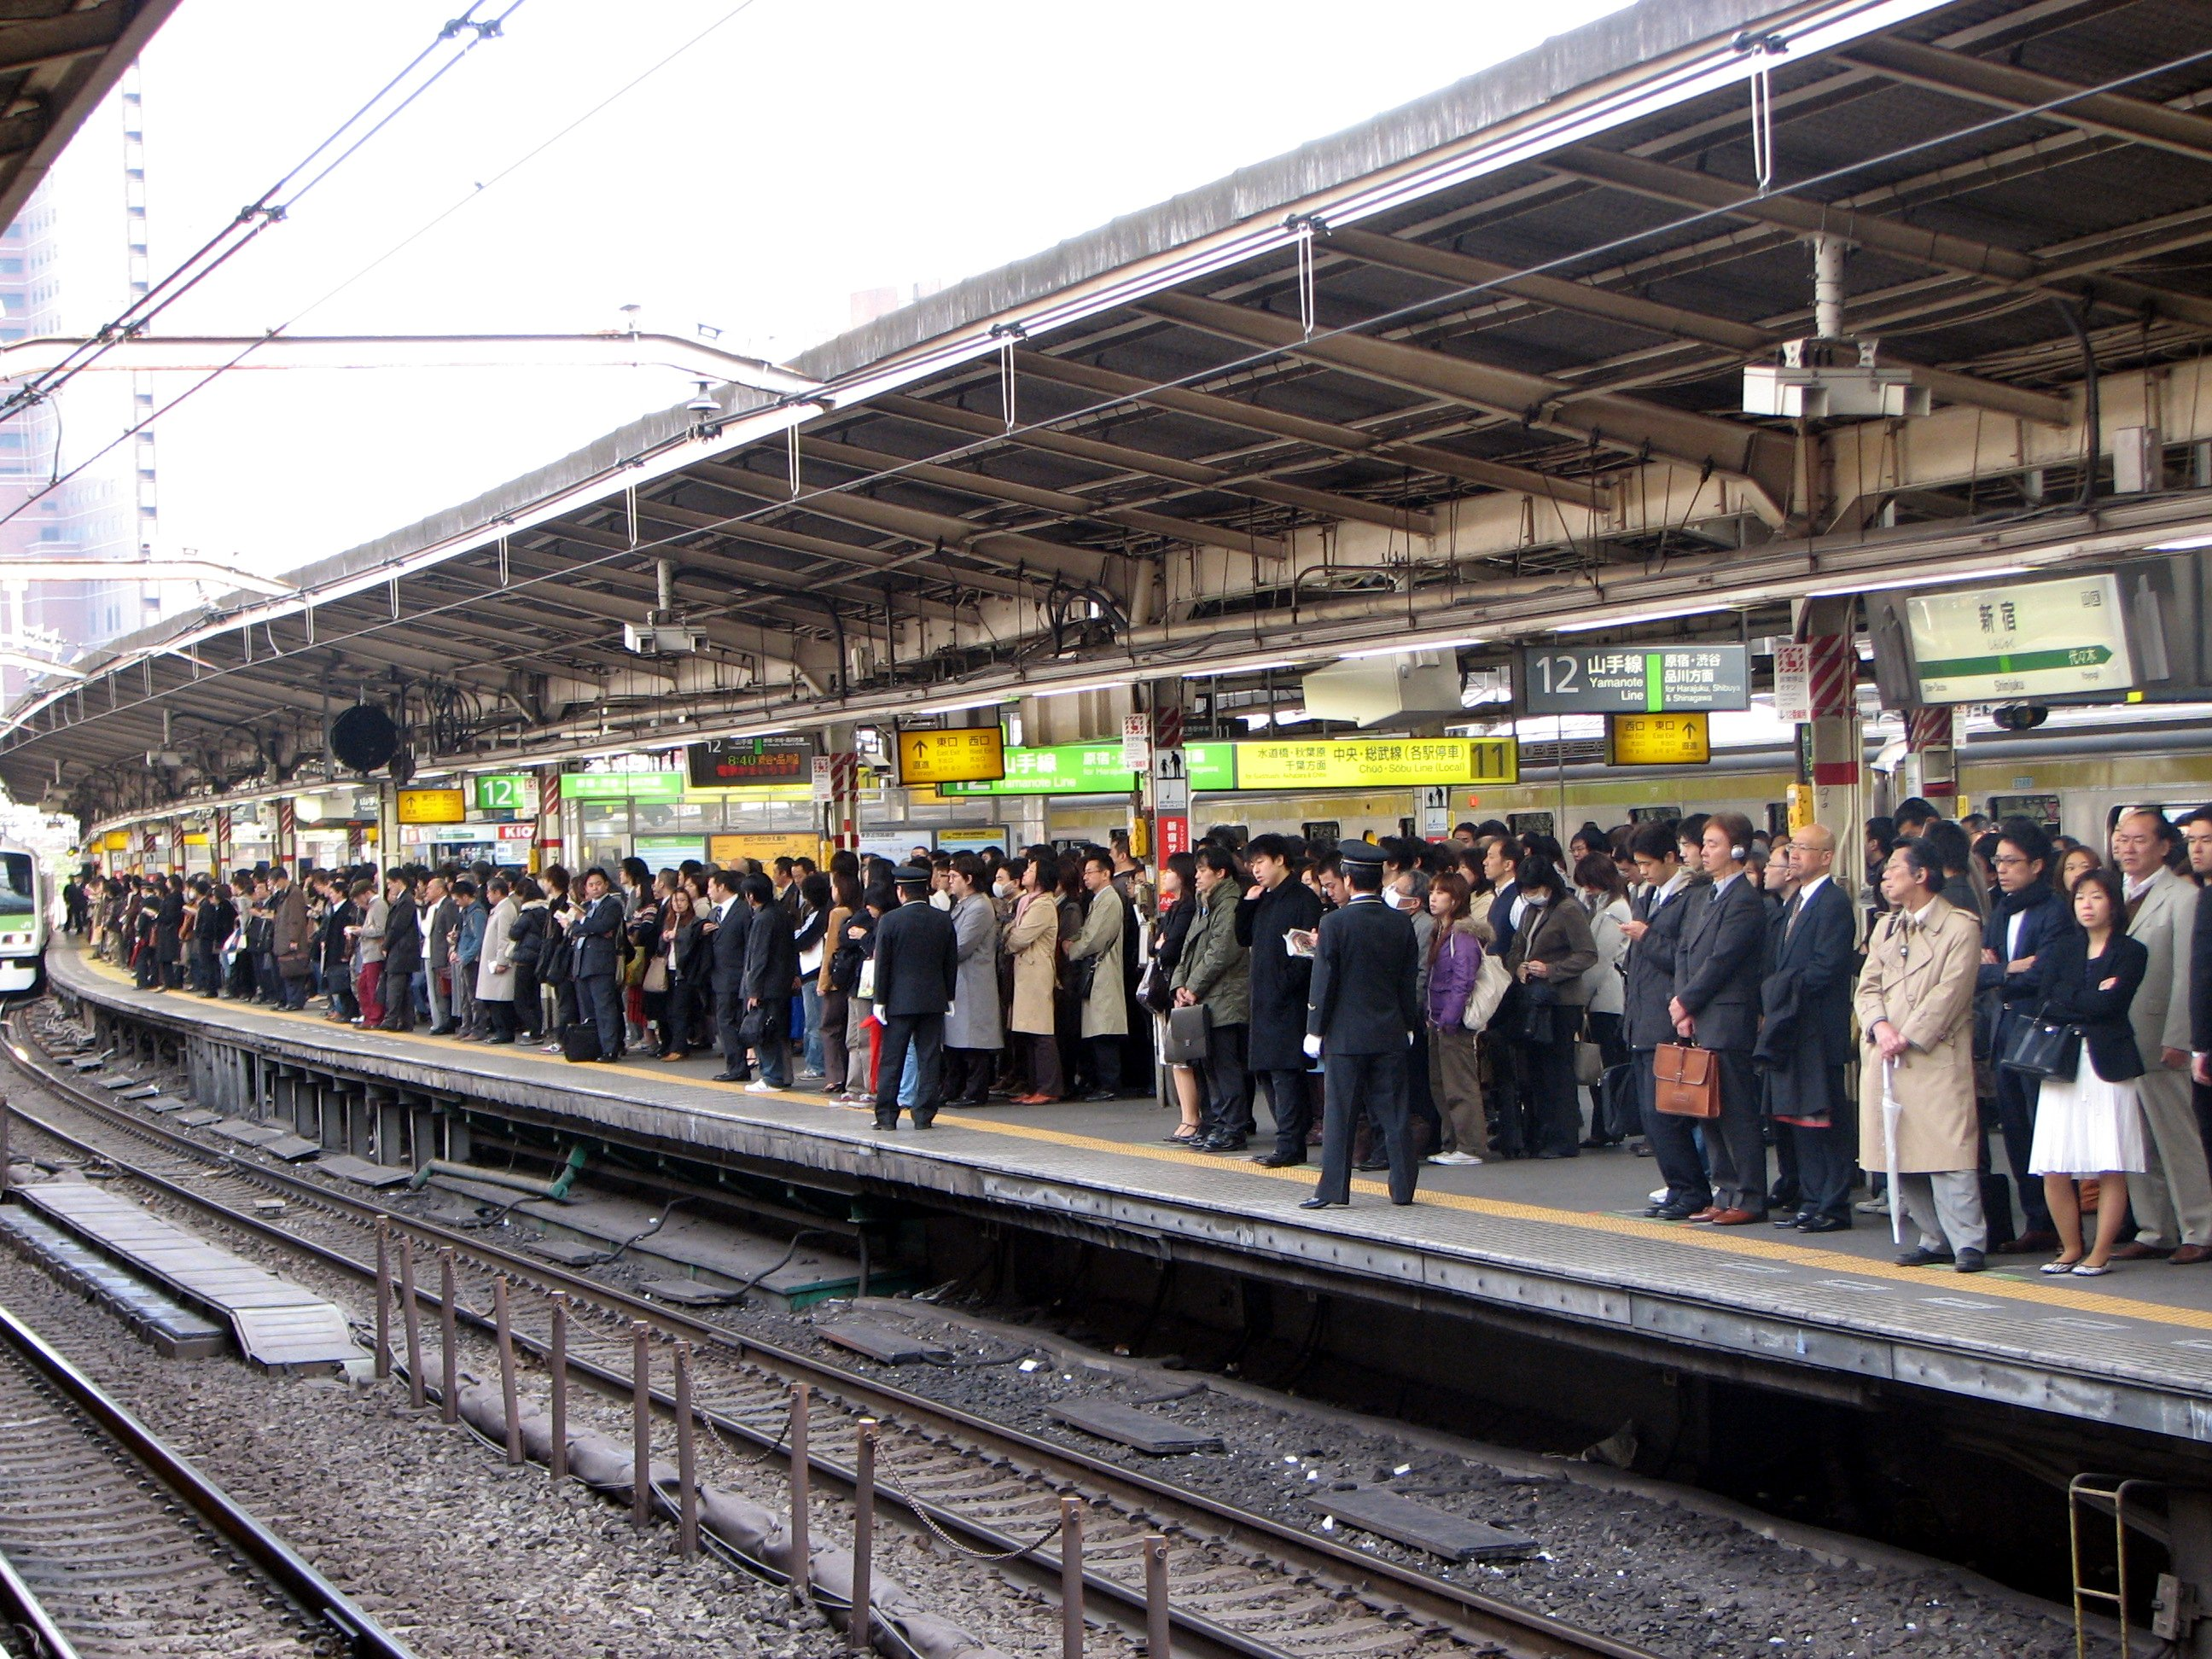 descriptive essay on railway station in rush hour A train station or railway station (also called a railroad station, rail station, or  depot) is a place where  at peak times, there is one train every 13 seconds  there.